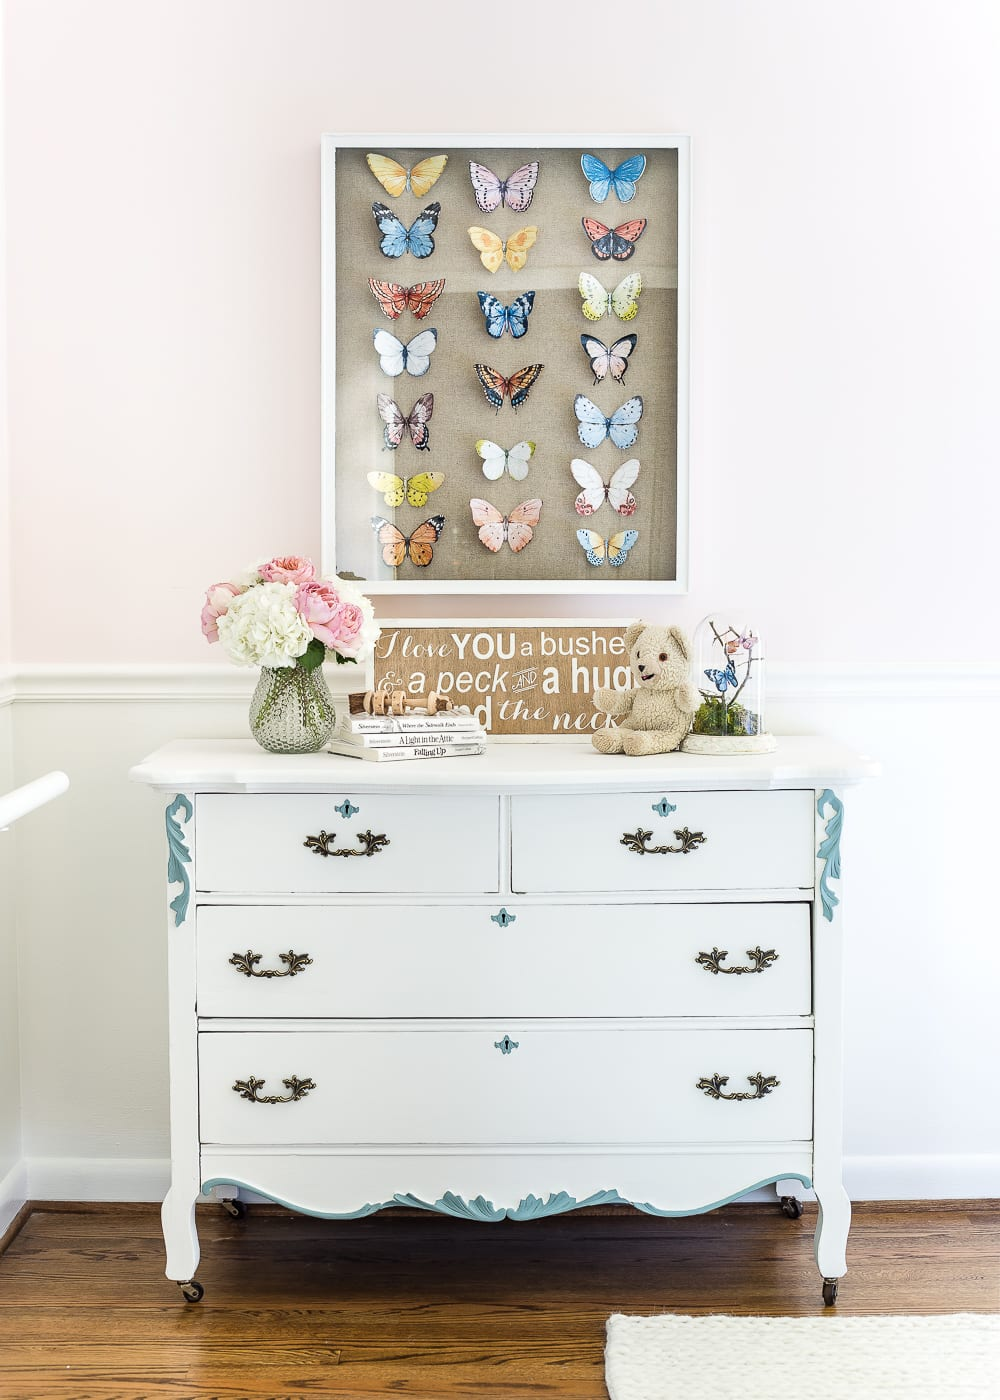 A tutorial about how to make an inexpensive modern Victorian style butterfly study shadow box with free printables of watercolor butterfly graphics for a little girl bedroom. #kidsdecor #girlbedroom #girlroom #kidsbedroom #wallart #kidsart #kidswallart #butterfly #butterflies #butterflydecor #girlydecor #nursery